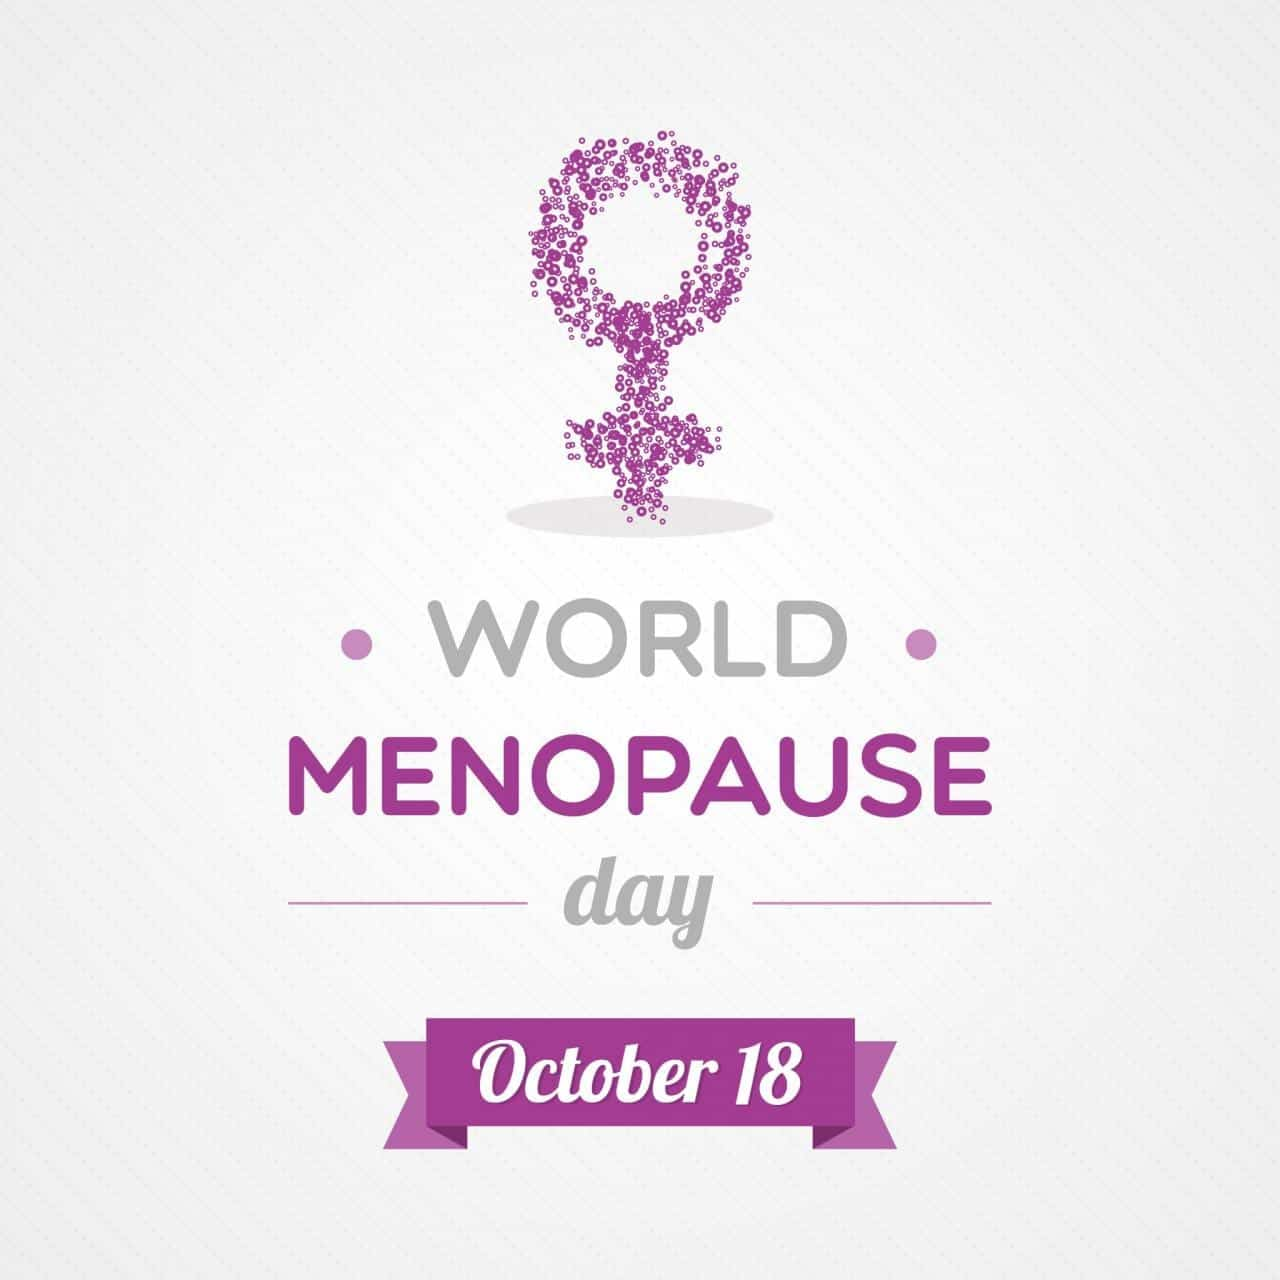 Organizing The Menopause: Indications, Medications And Guidance From The Specialists